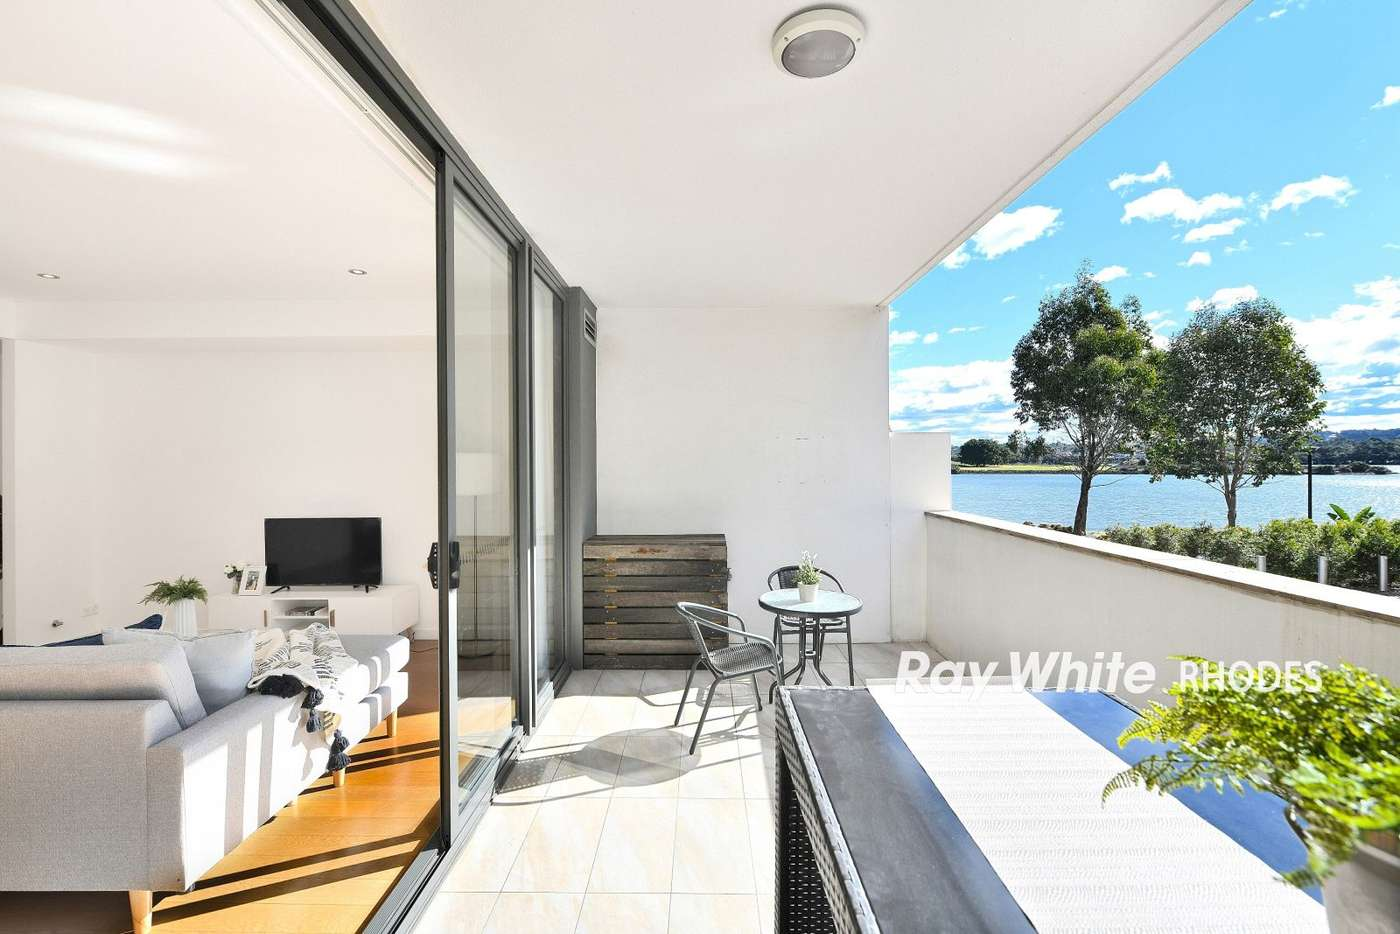 Main view of Homely apartment listing, 201/5 Nina Gray Avenue, Rhodes NSW 2138